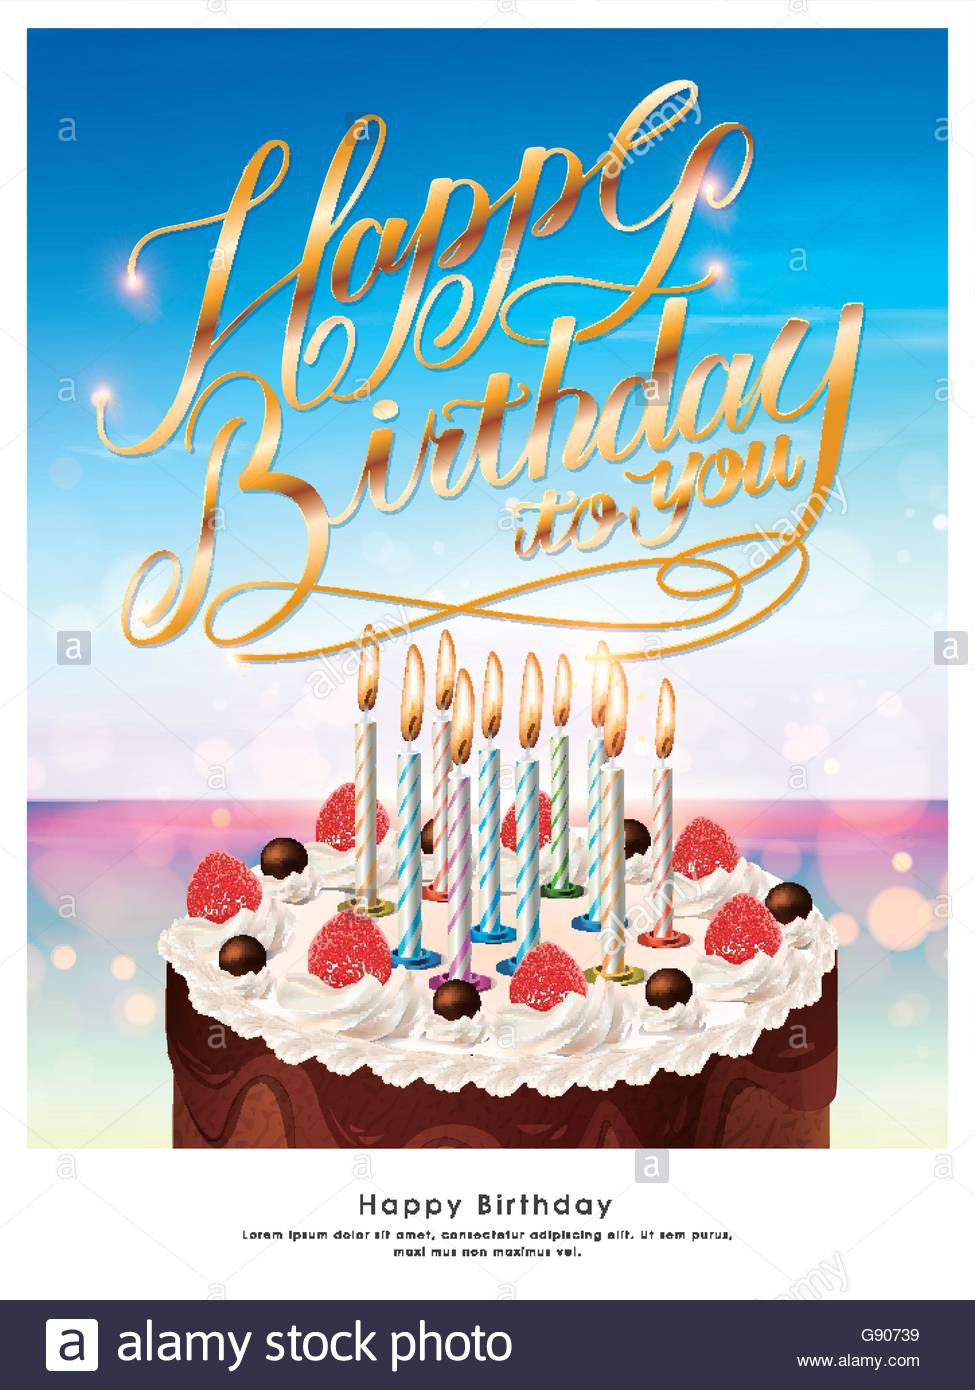 happy birthday poster template ; happy-birthday-poster-template-design-with-delicious-cake-G90739